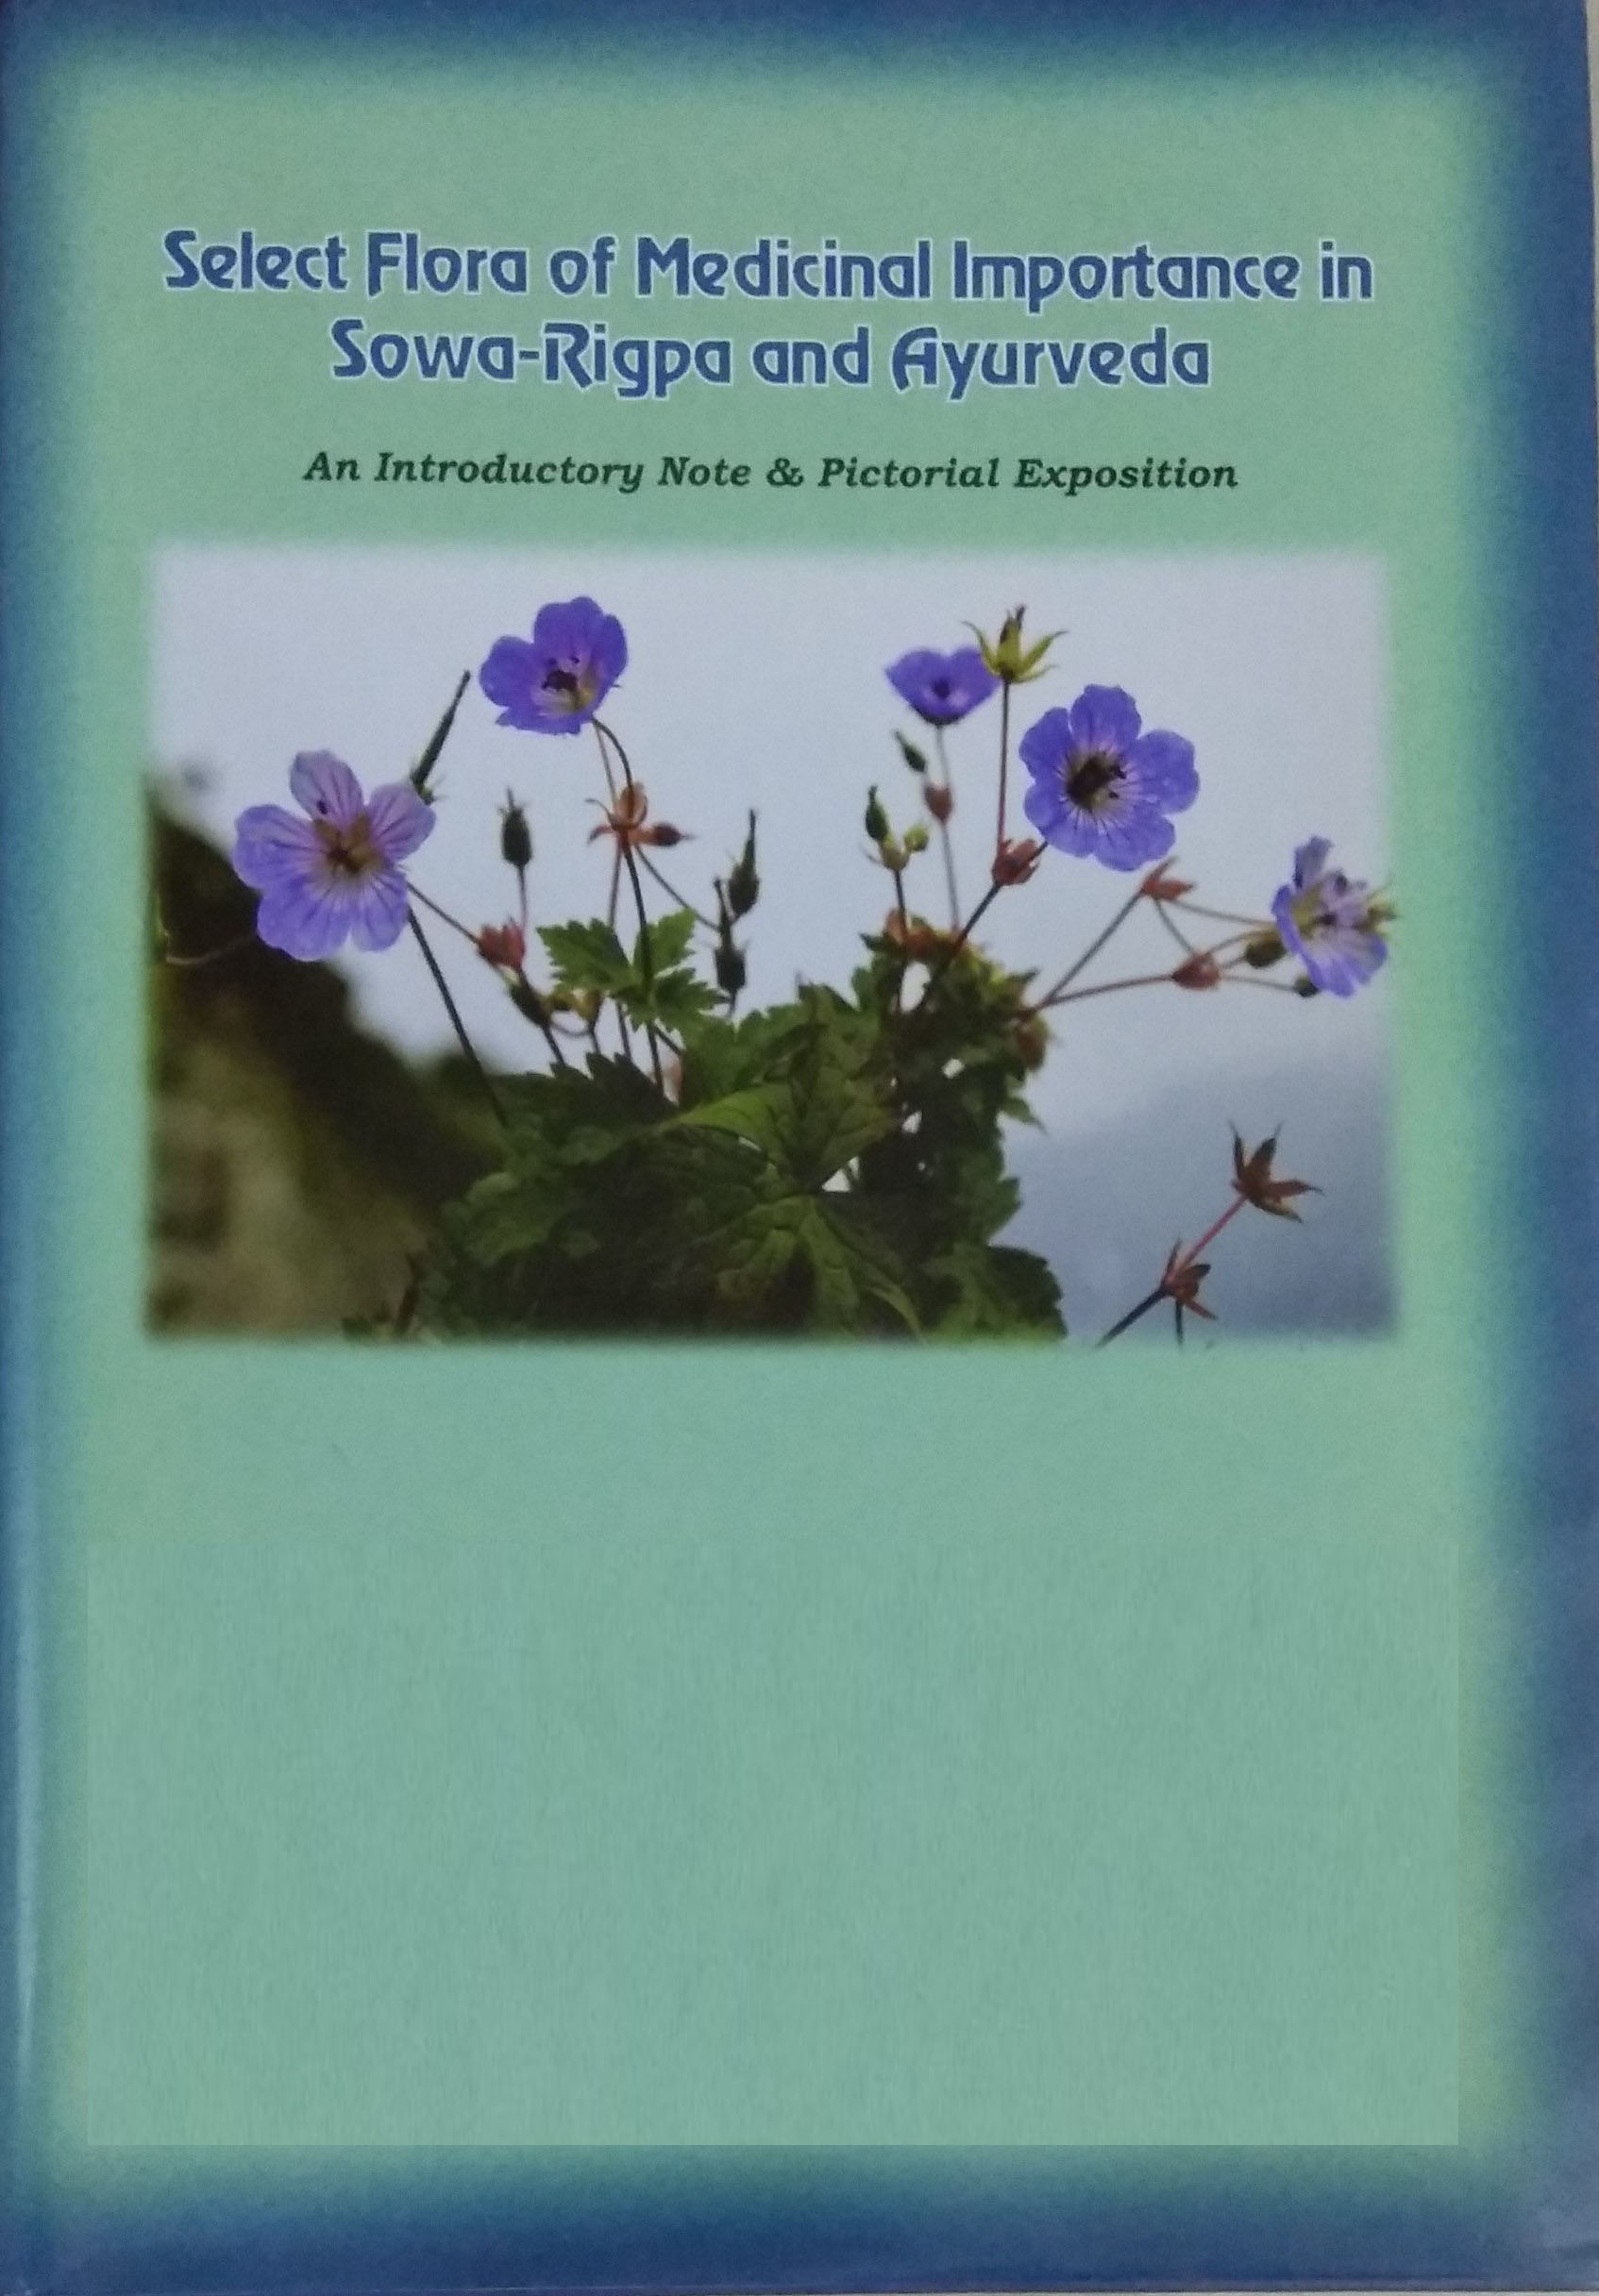 Select Flora of Medicinal Importance in Sowa-Rigpa…